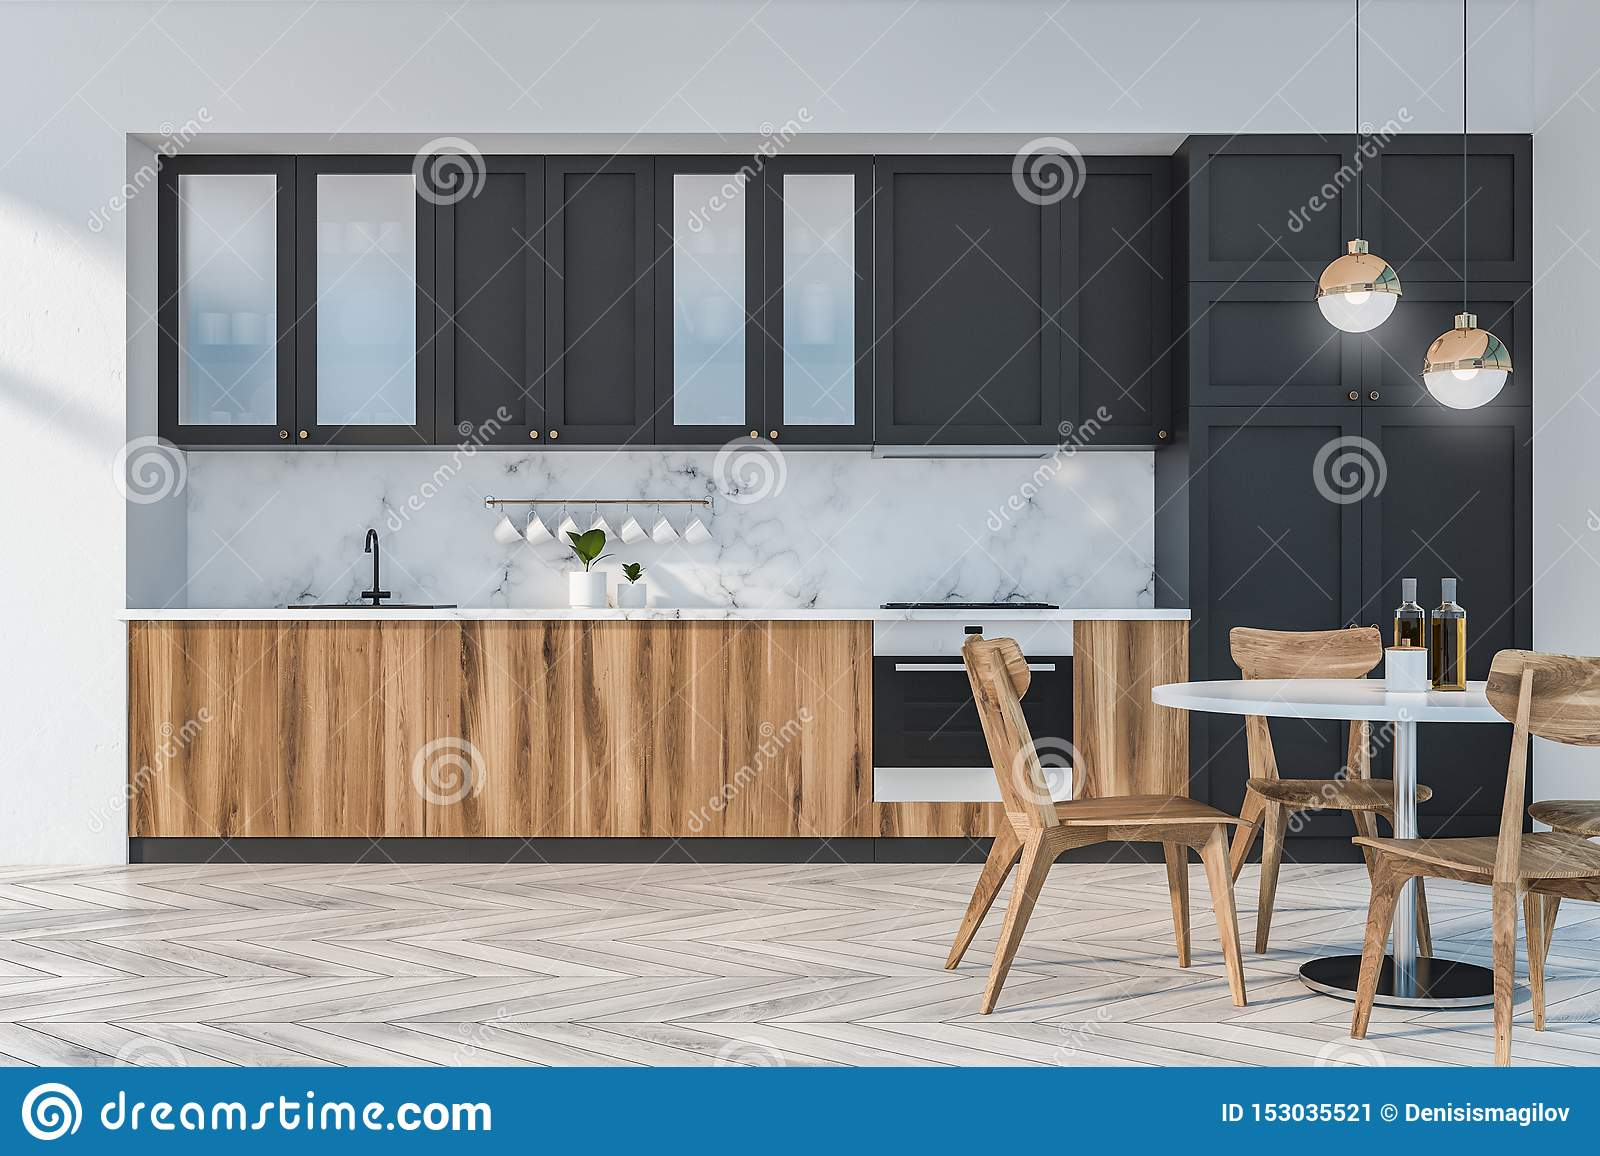 Marble Kitchen Interior With Table And Counters Stock Illustration Illustration Of Contemporary Indoor 153035521